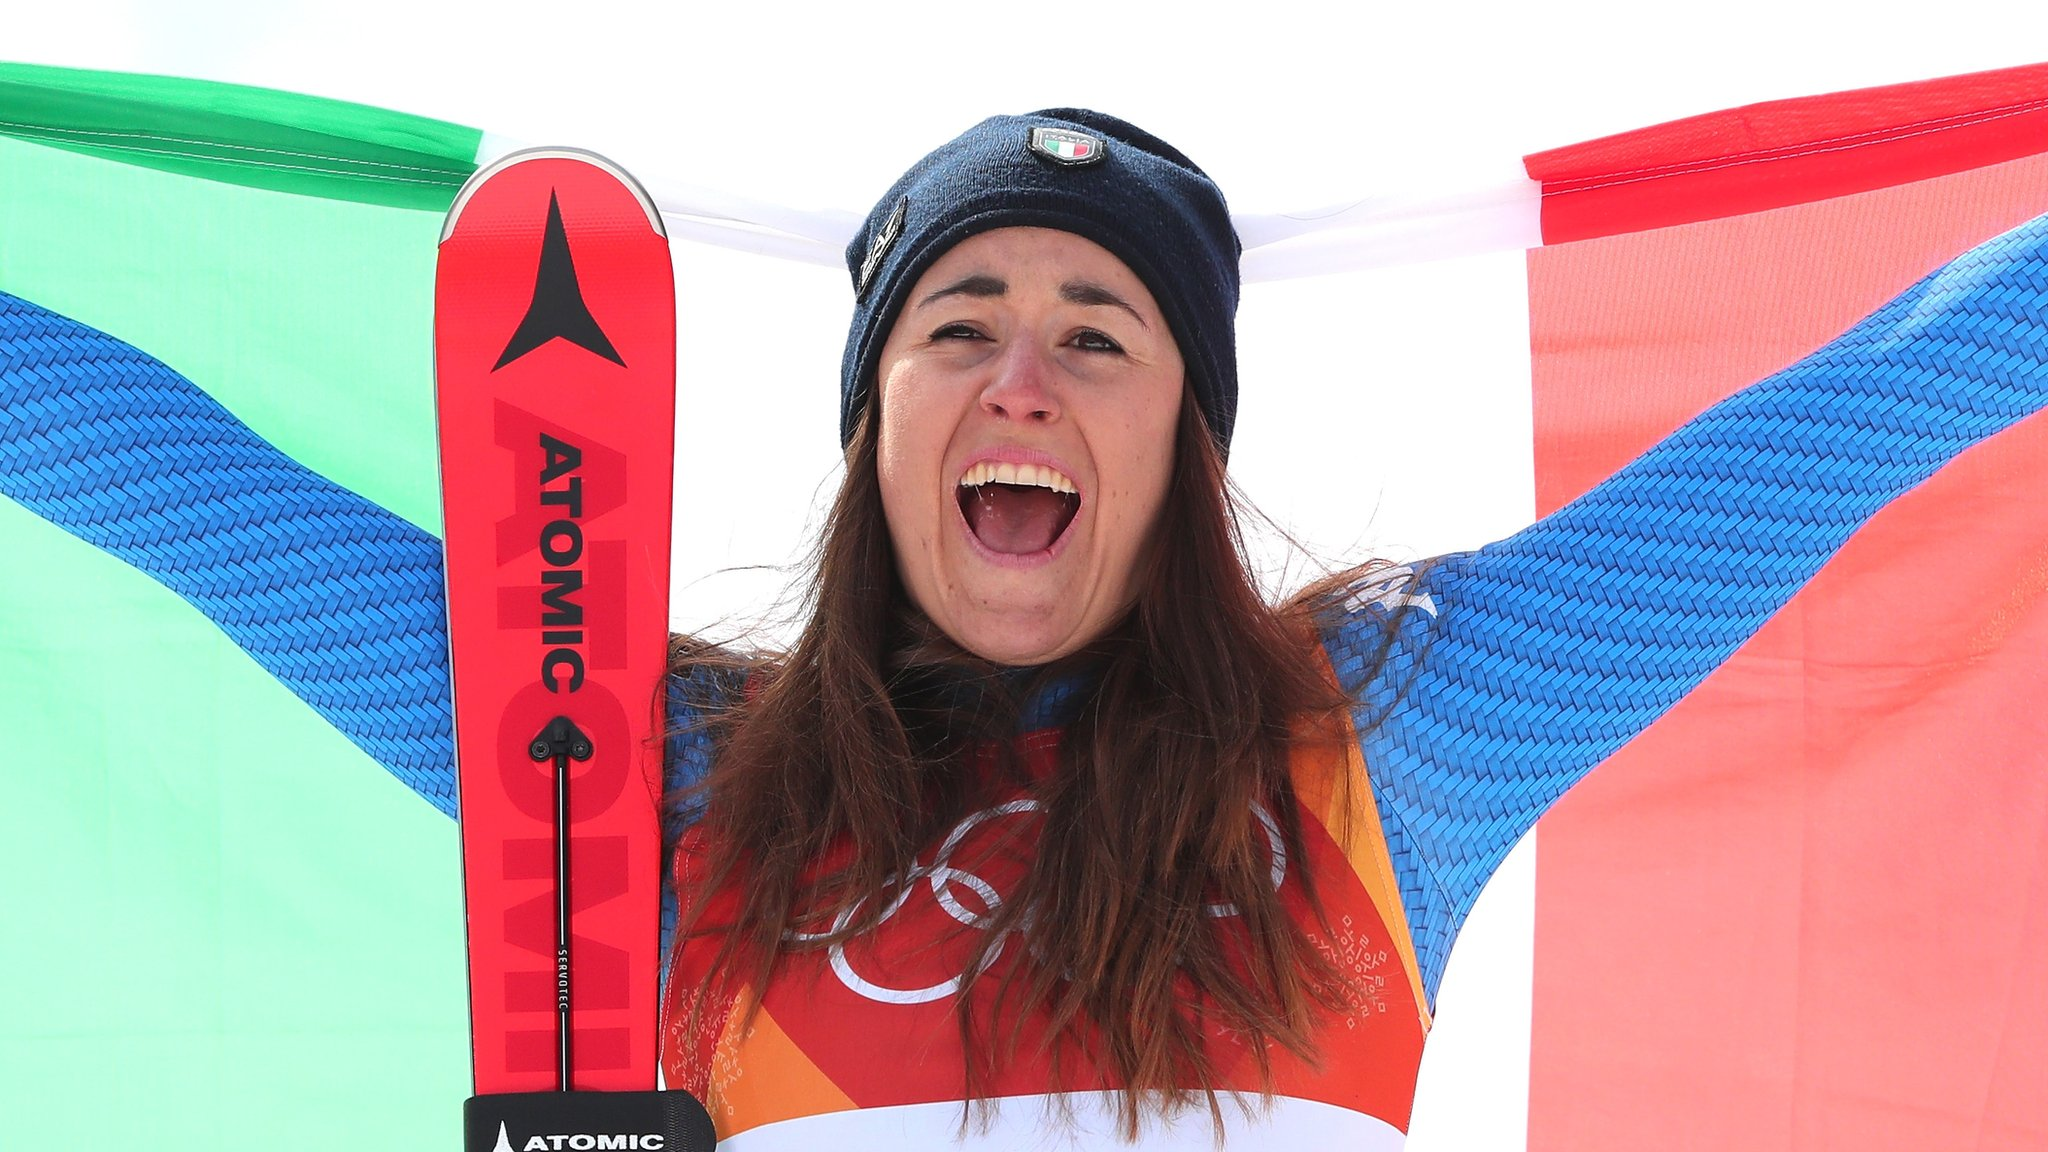 Winter Olympics: Sofia Goggia beats Lindsey Vonn to become Italy's first female downhill champion